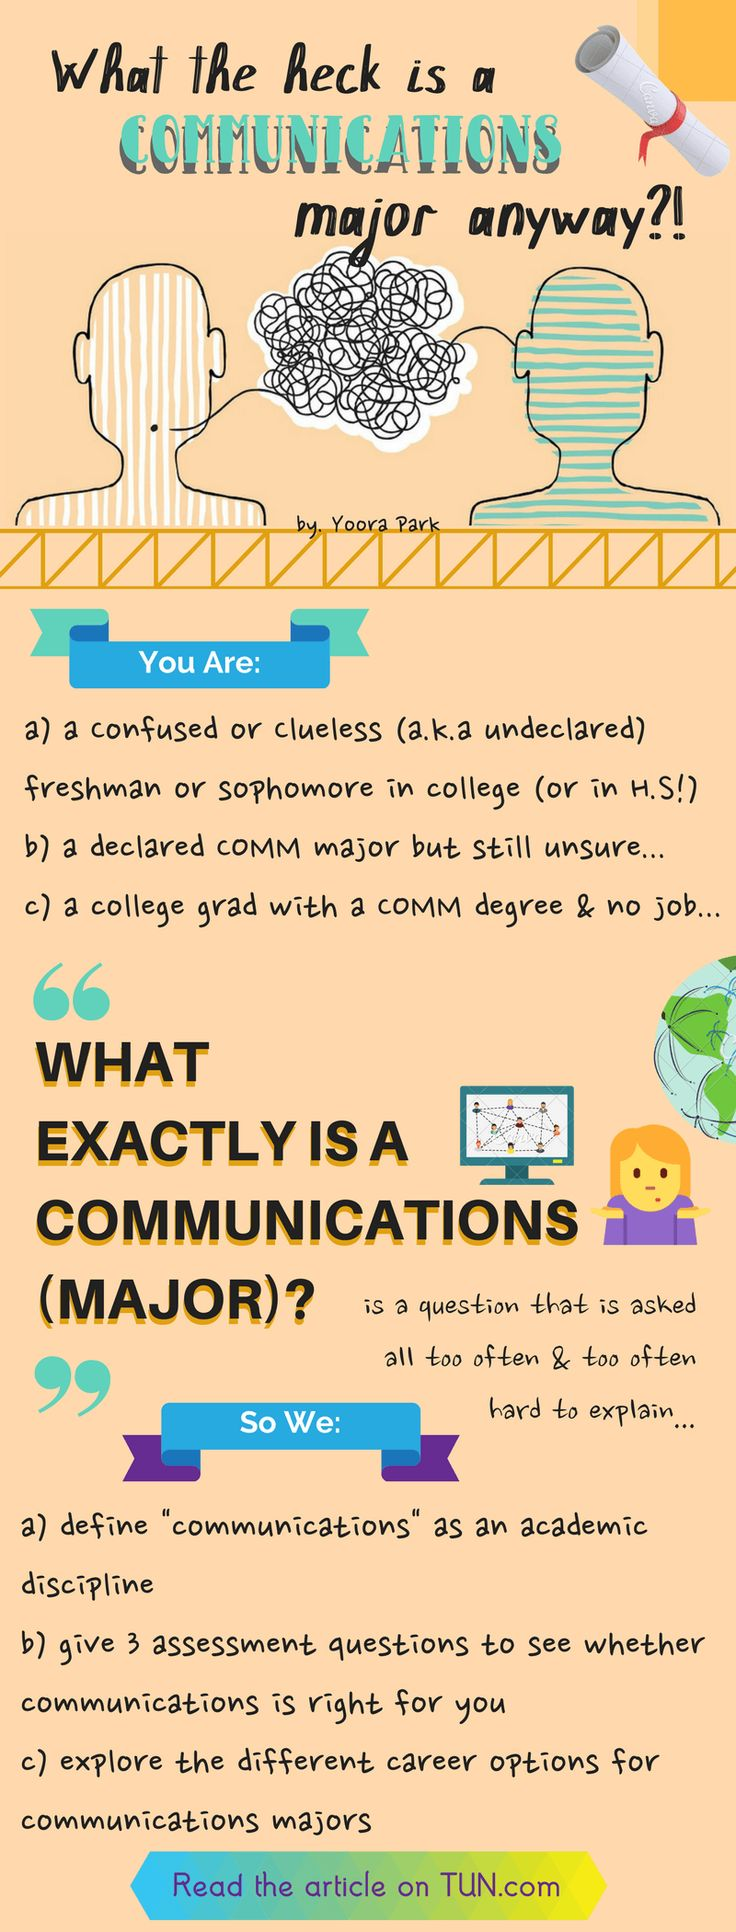 #communications #communications #communications #degree #anyway